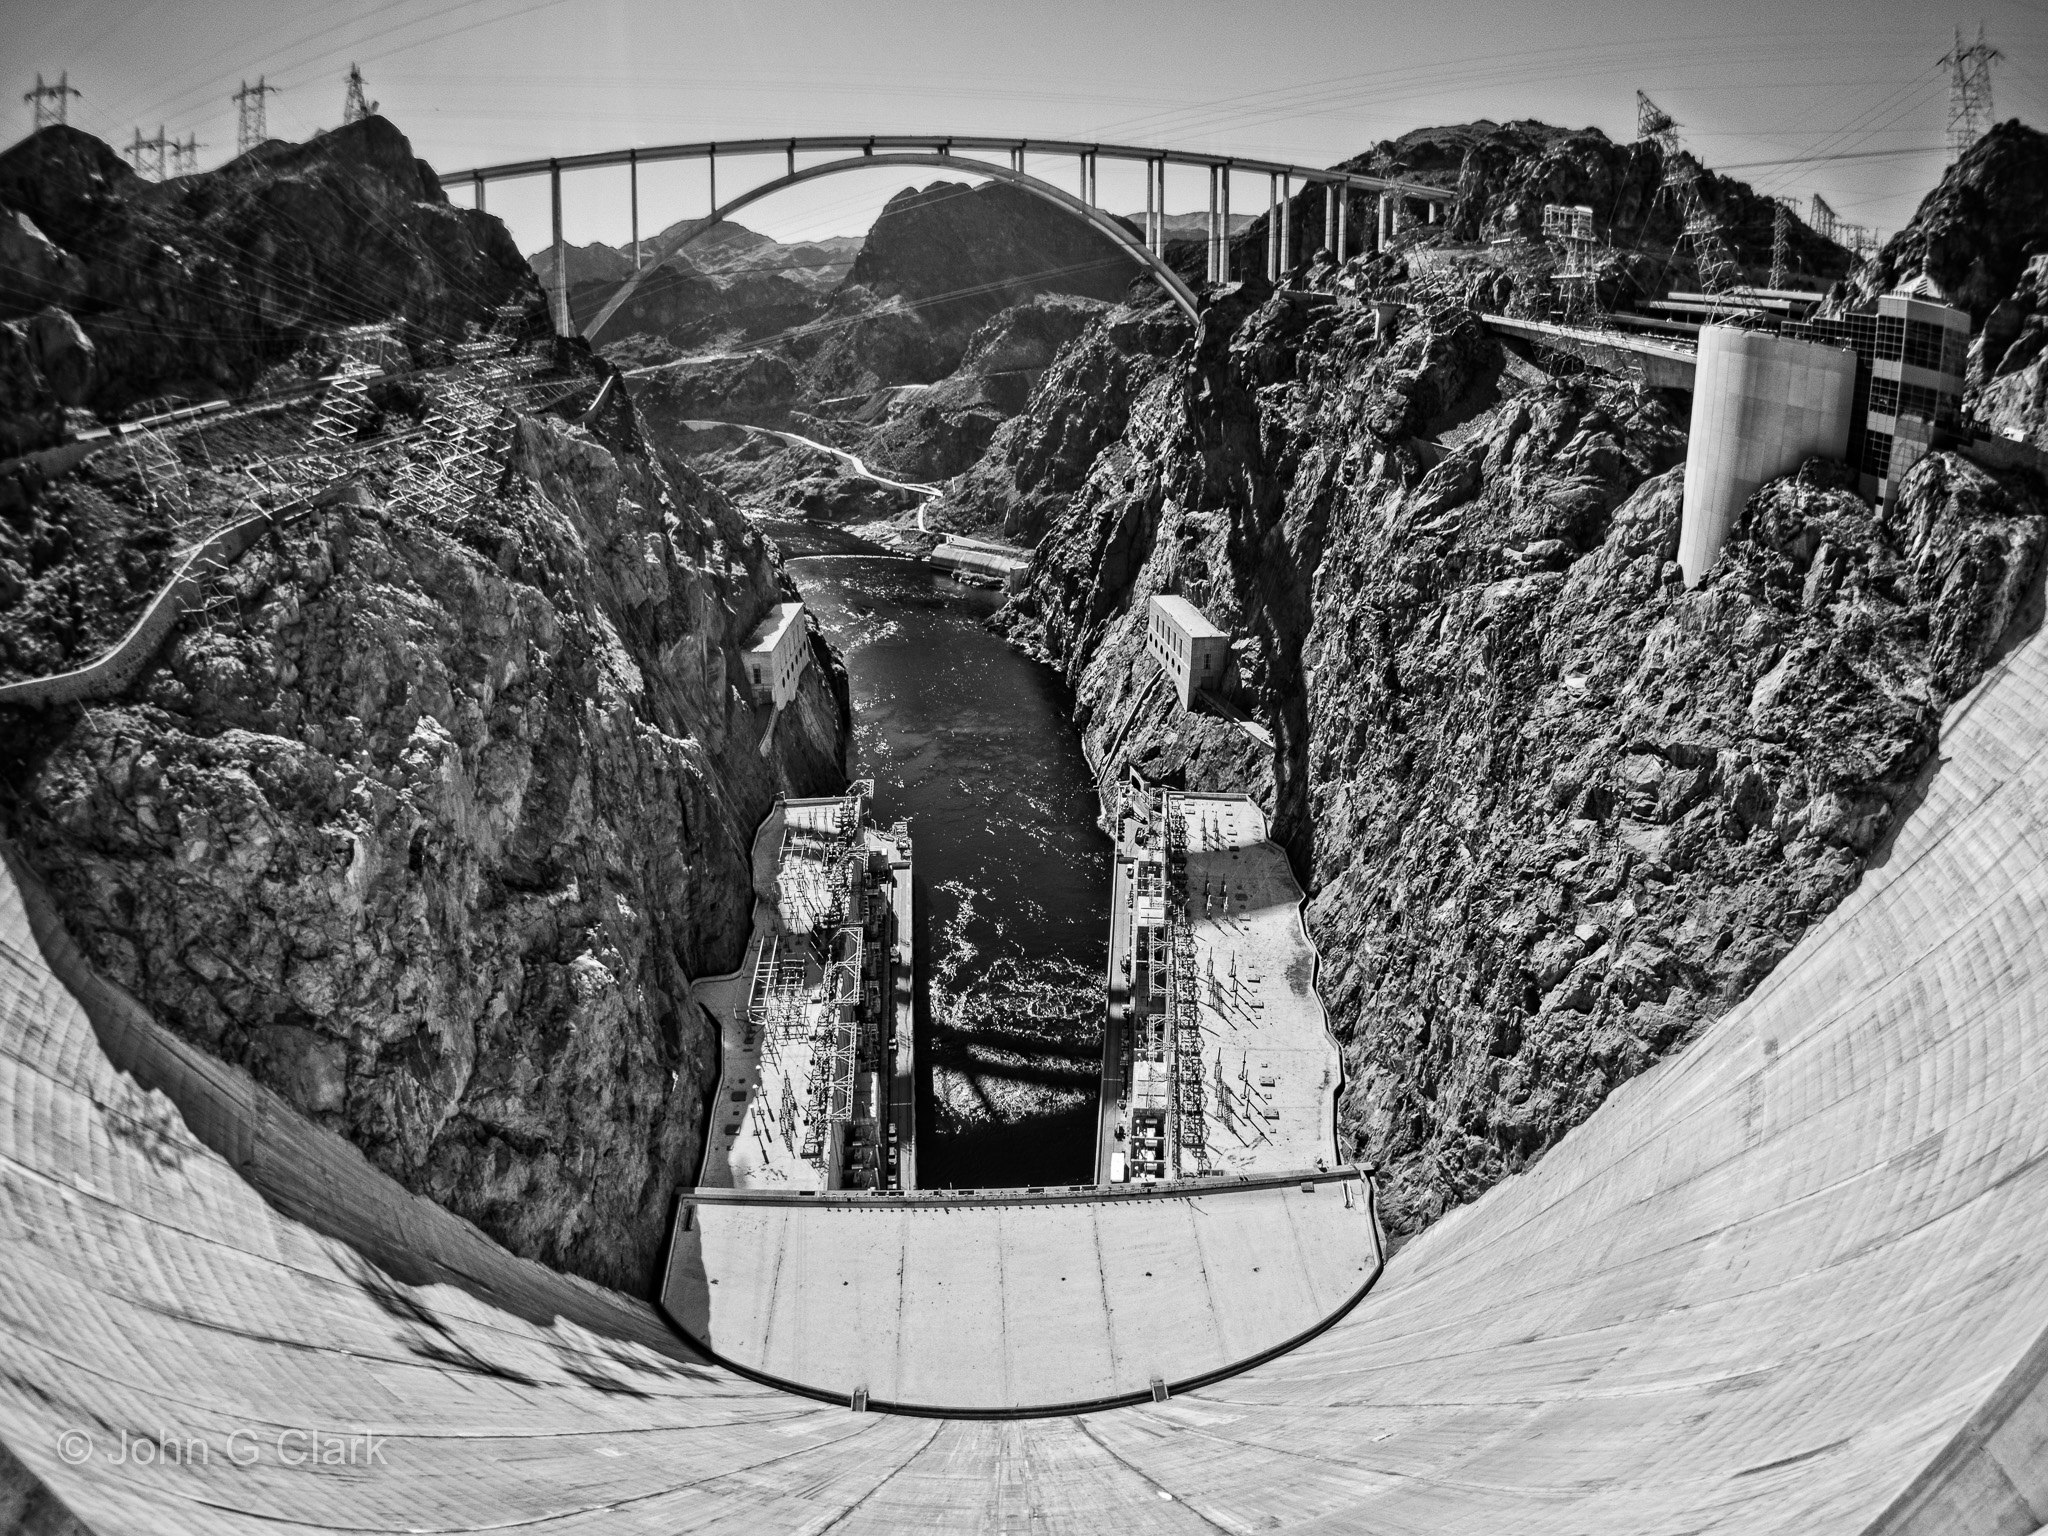 ON1 RAW 2018 has a fantastic set of Effects filters and presets to convert an image to BW, such as this shot from Hoover Dam